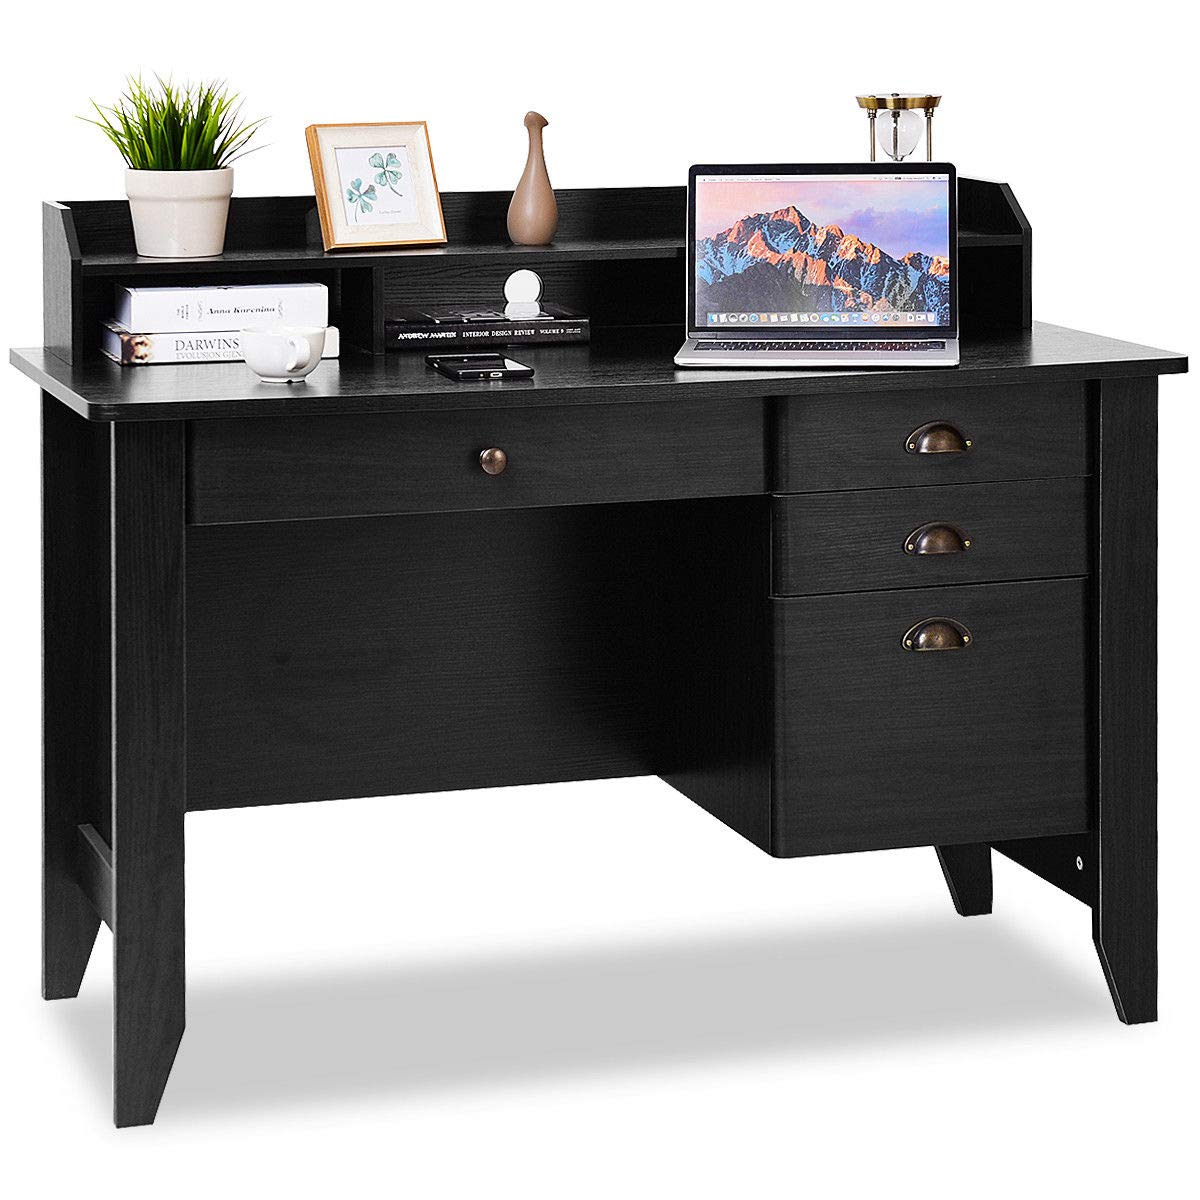 Tangkula Computer Desk, Home Office Desk, Wood Frame Vintage Style Student Table with 4 Drawers & Bookshelf, PC Laptop Notebook Desk, Spacious Workstation Writing Study Table (Black) by Tangkula